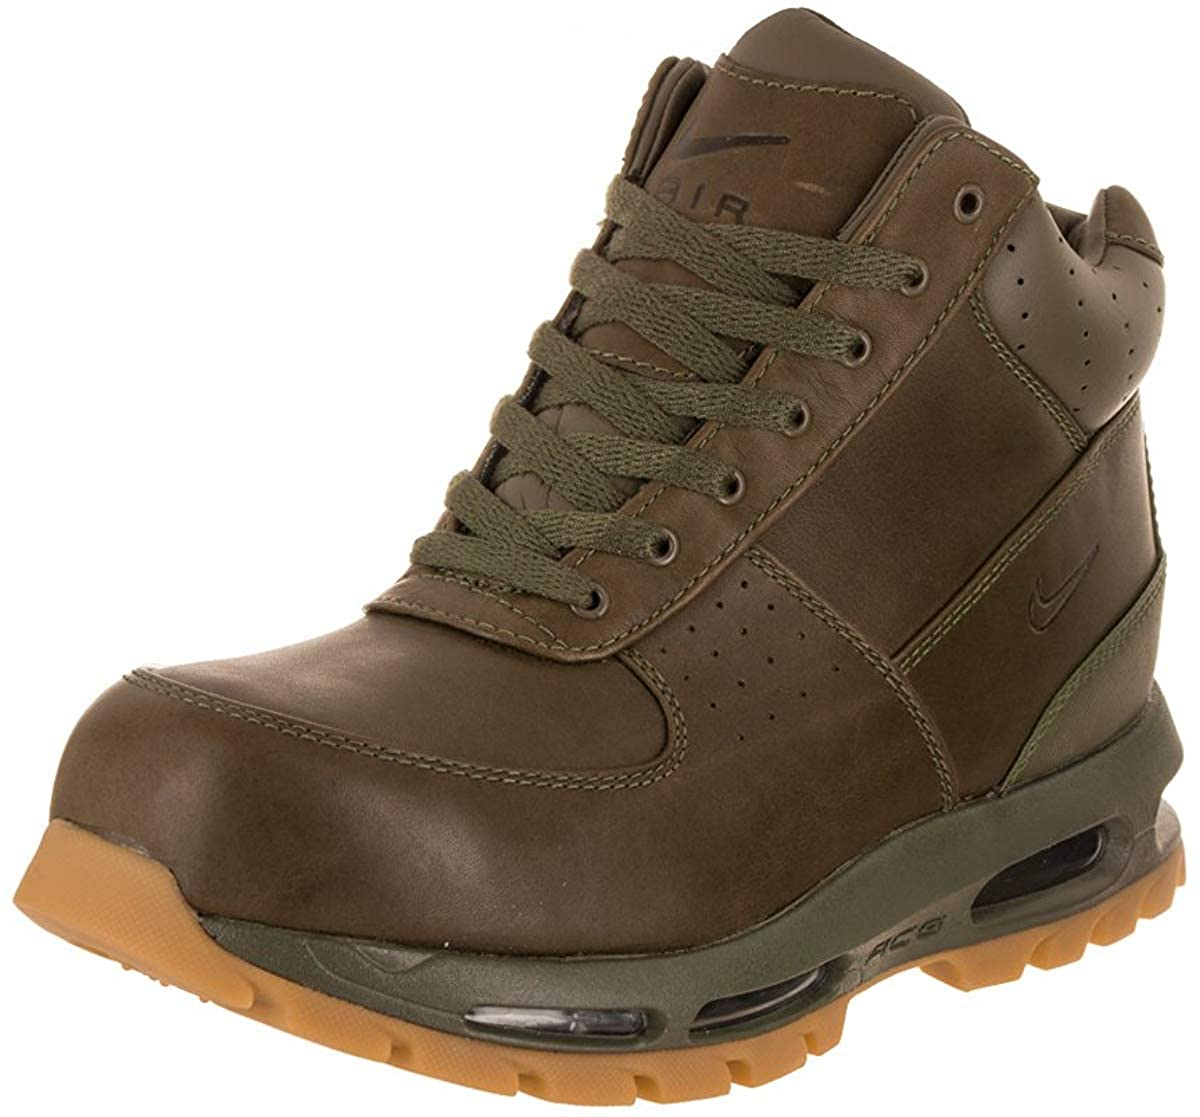 Nike Air Max Goadome Mens Boots 865031: Amazon.it: Scarpe e